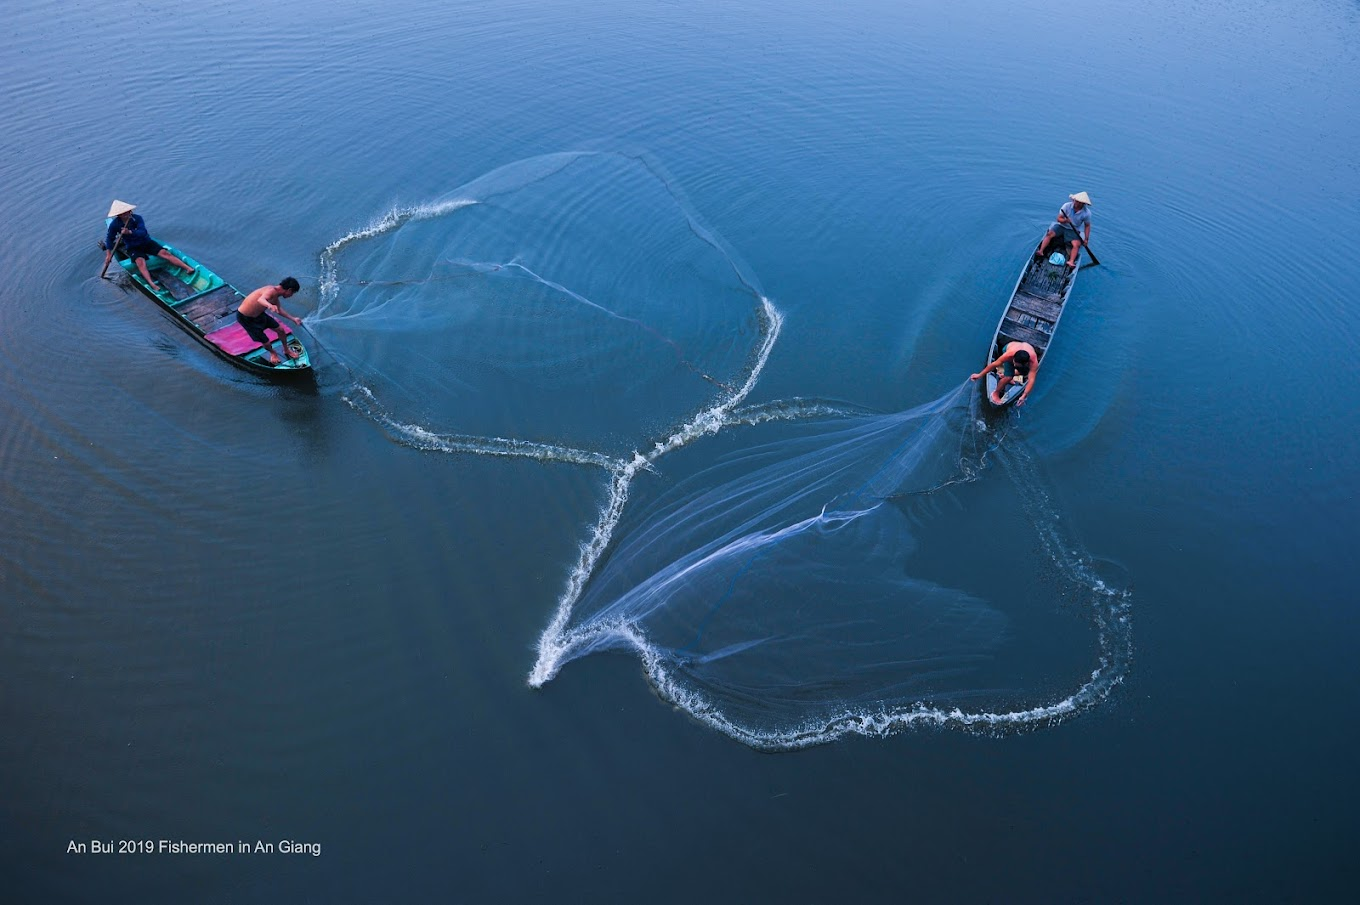 Fisherman throwing the fishing net in the river